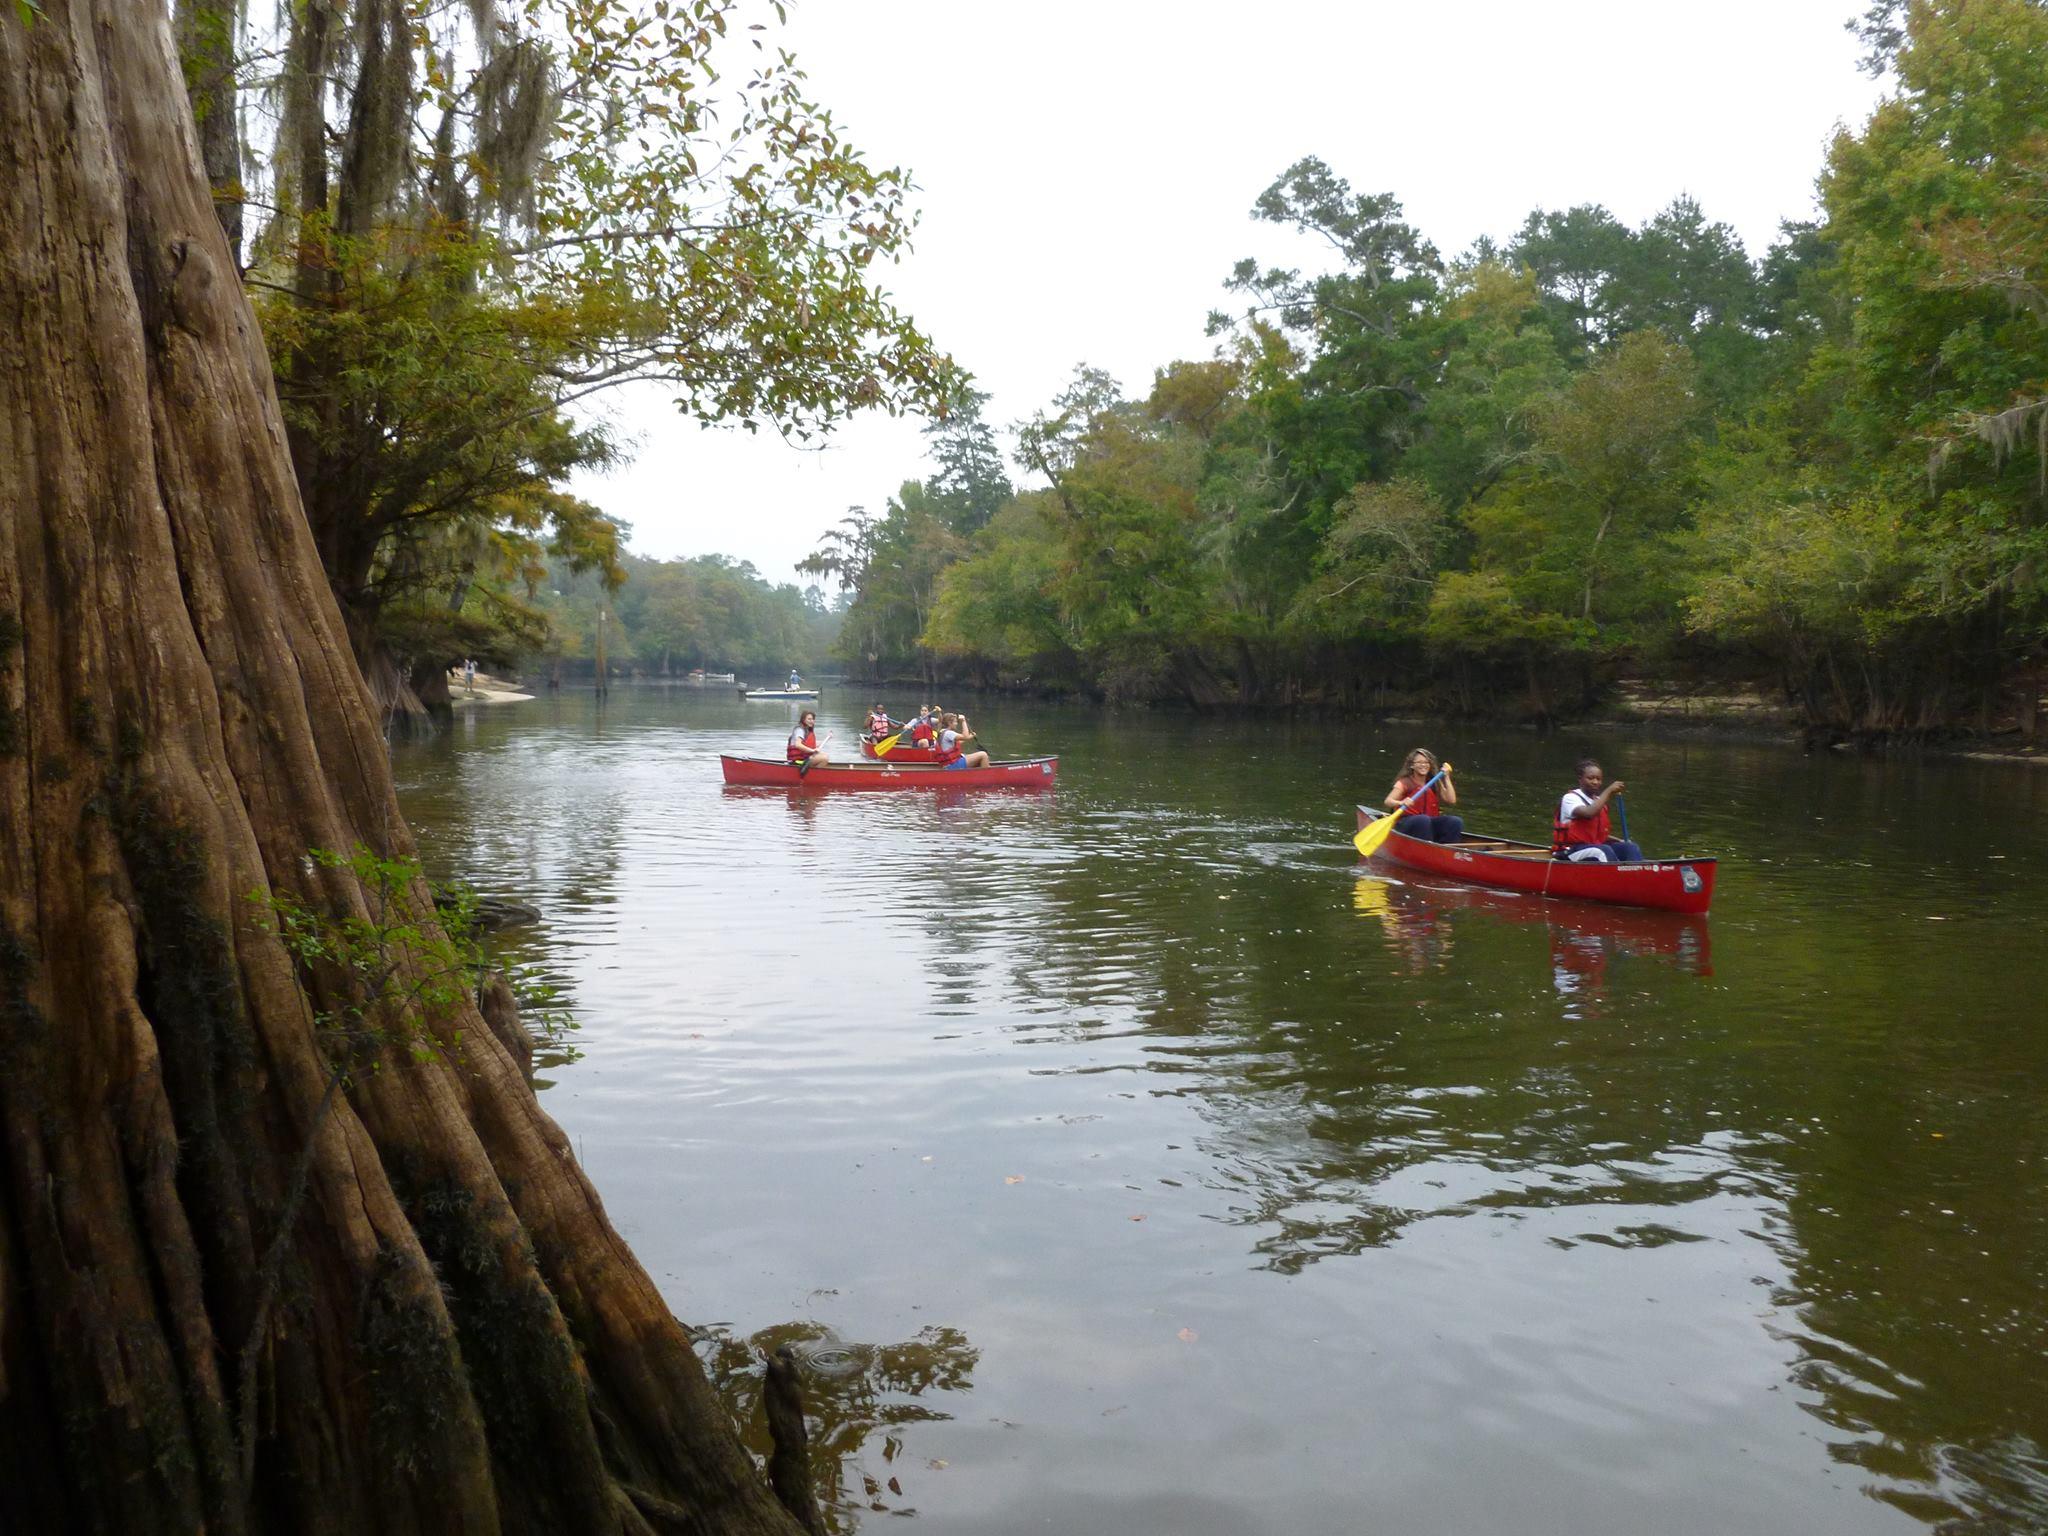 5th Annual Keep McIntosh Beautiful Rivers Alive! Cleanup @ Barrington Park